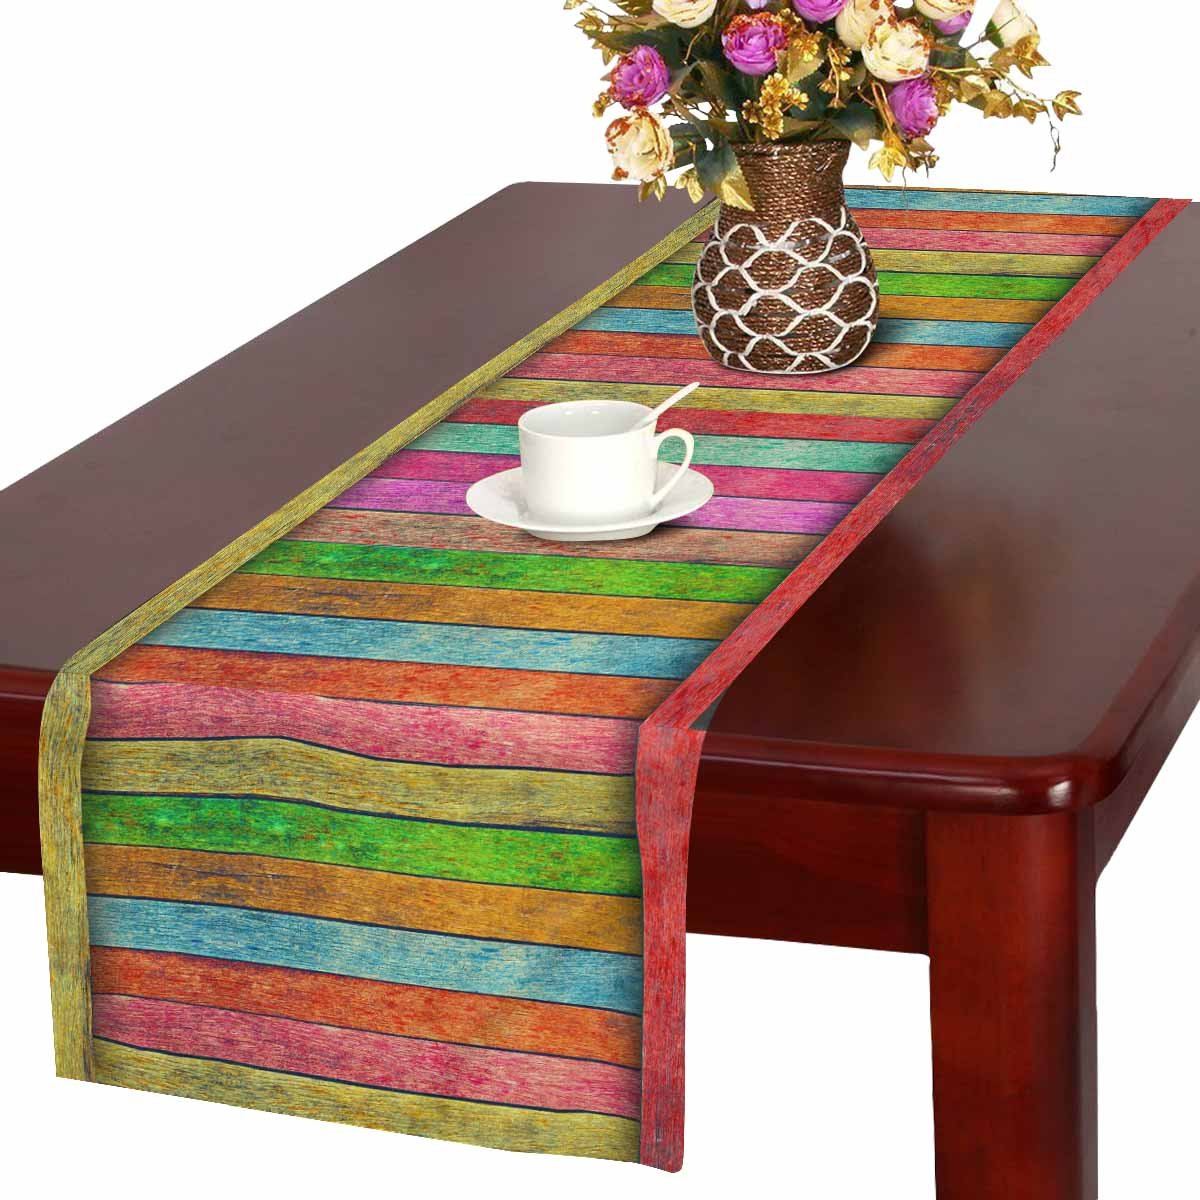 InterestPrint Colorful Wood Table Runner Home Decor 16 X 72 Inch,Rainbow Wood Table Cloth Runner for Wedding Party Banquet Decoration